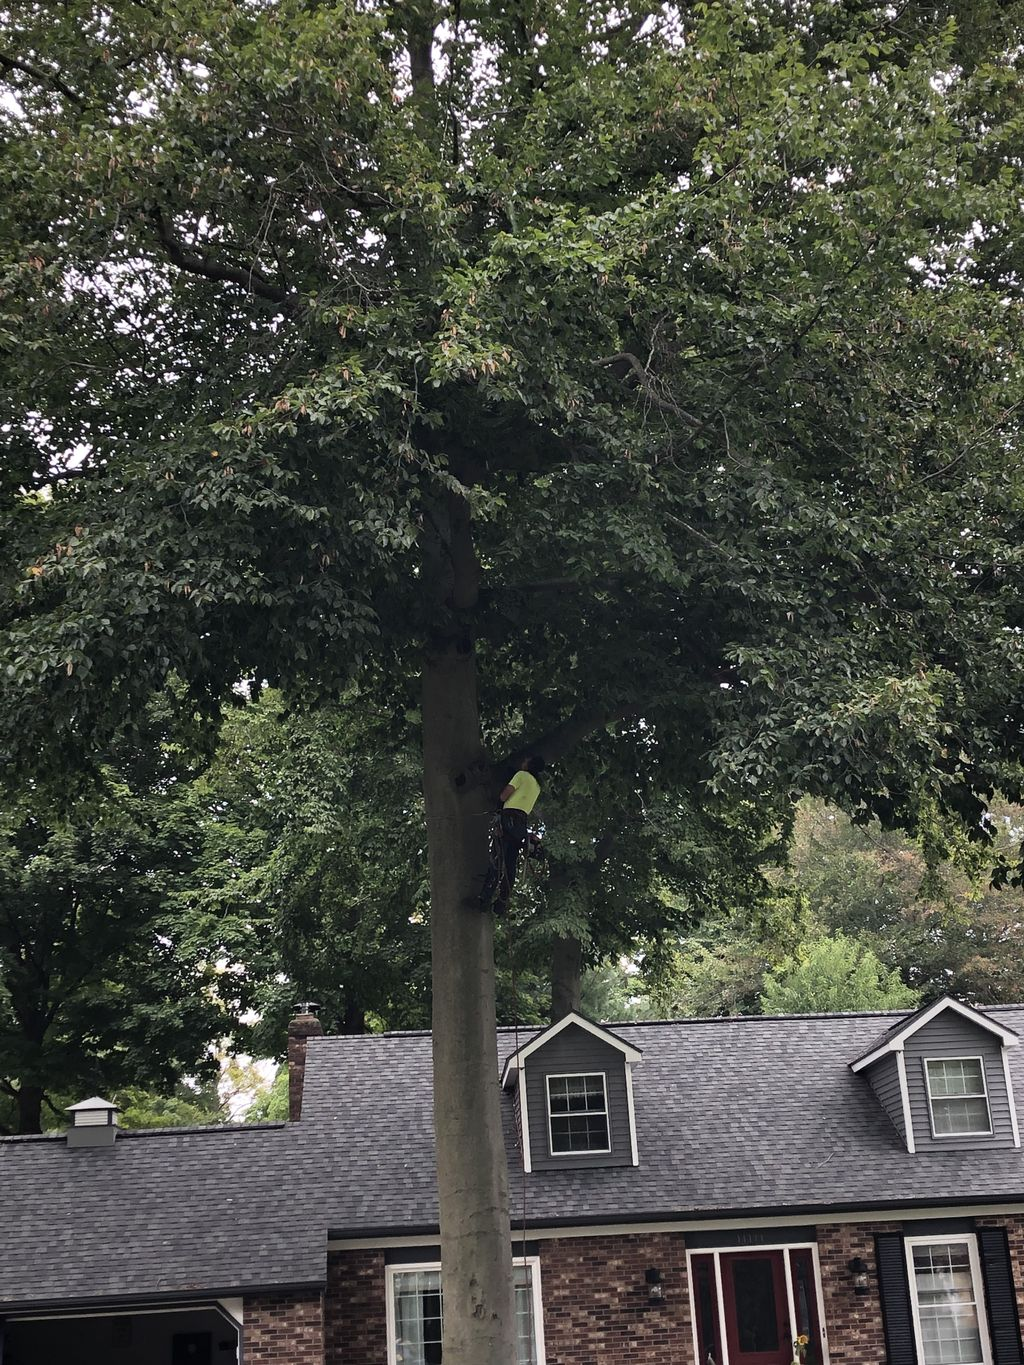 Tree service landscaping business